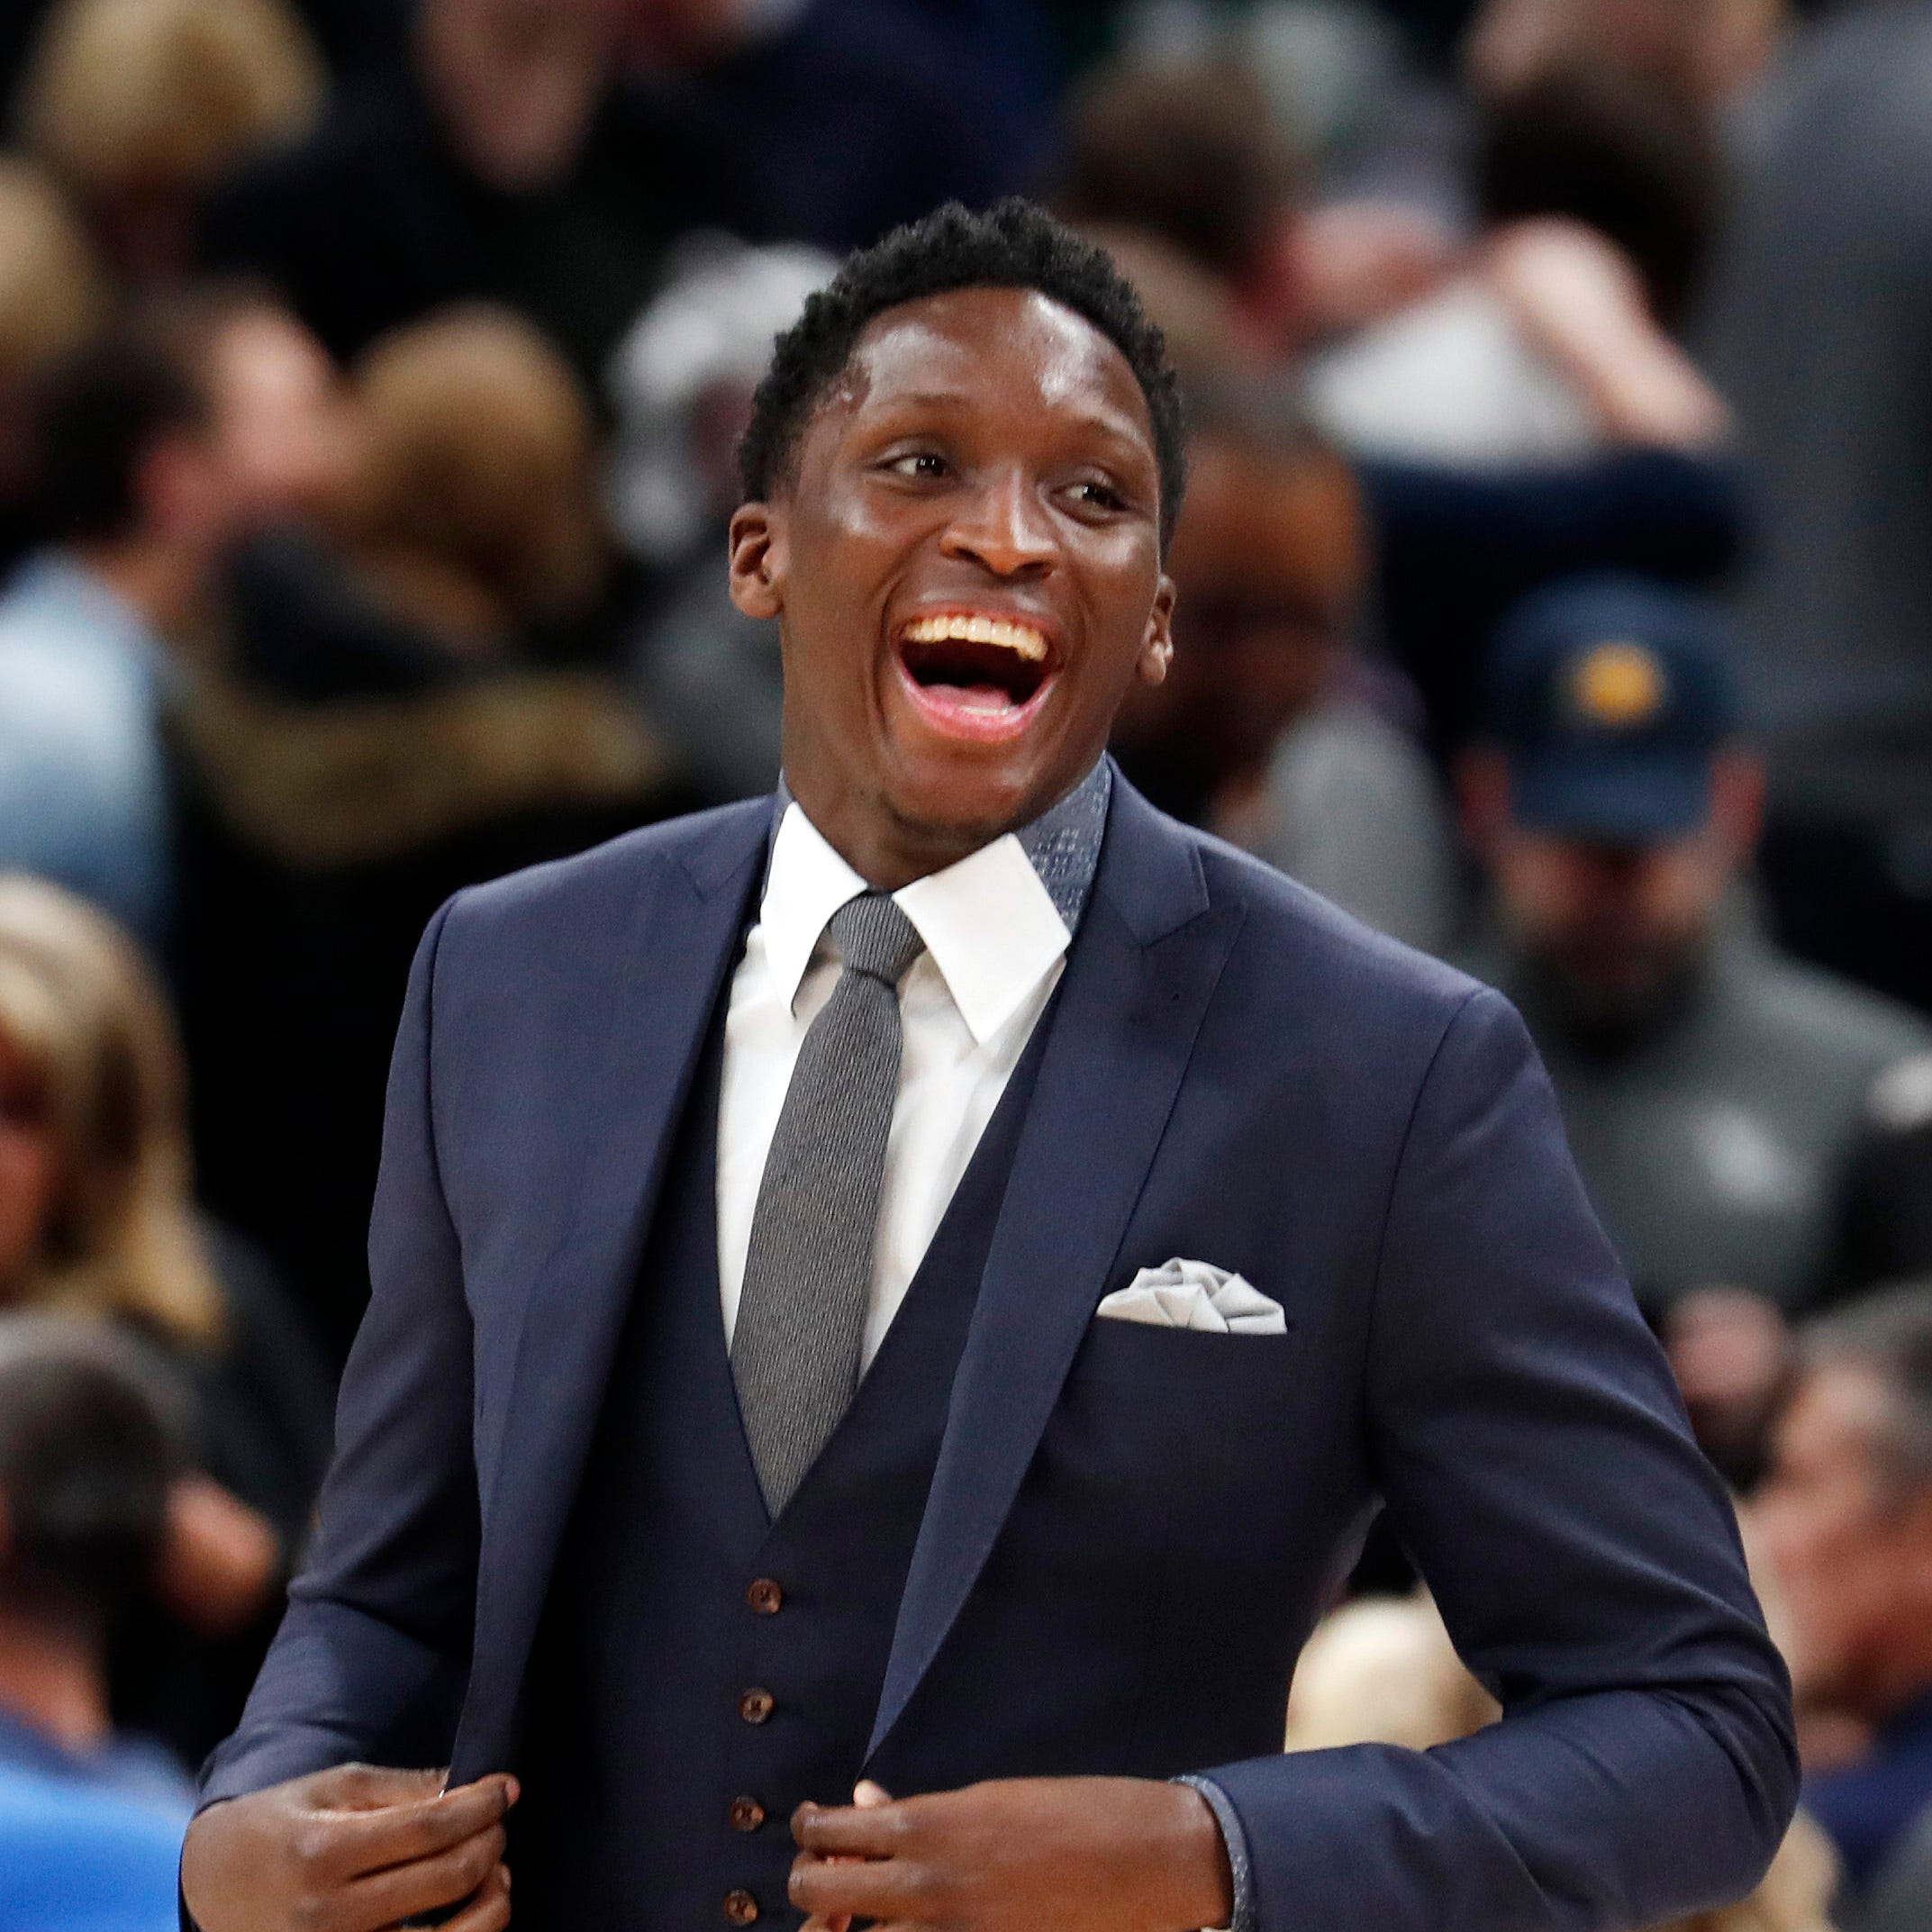 Where Sports Illustrated ranks the Indiana Pacers' Victor Oladipo